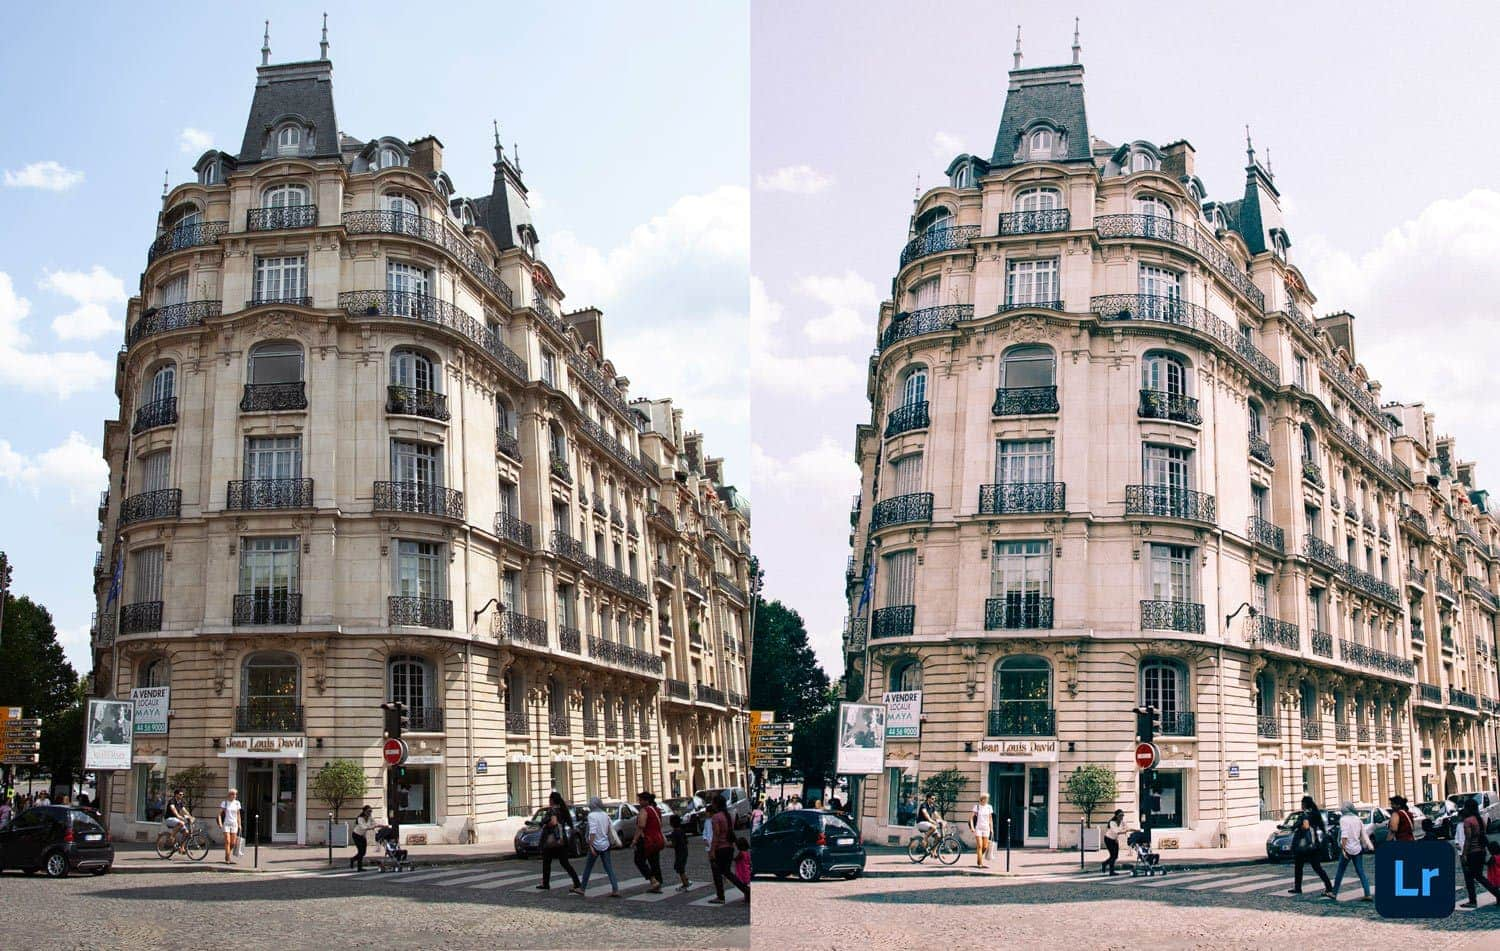 Free-Lightroom-Preset-and-Profile-FUJ-XPro-Before-and-After-Vid-Cover-Presetpro